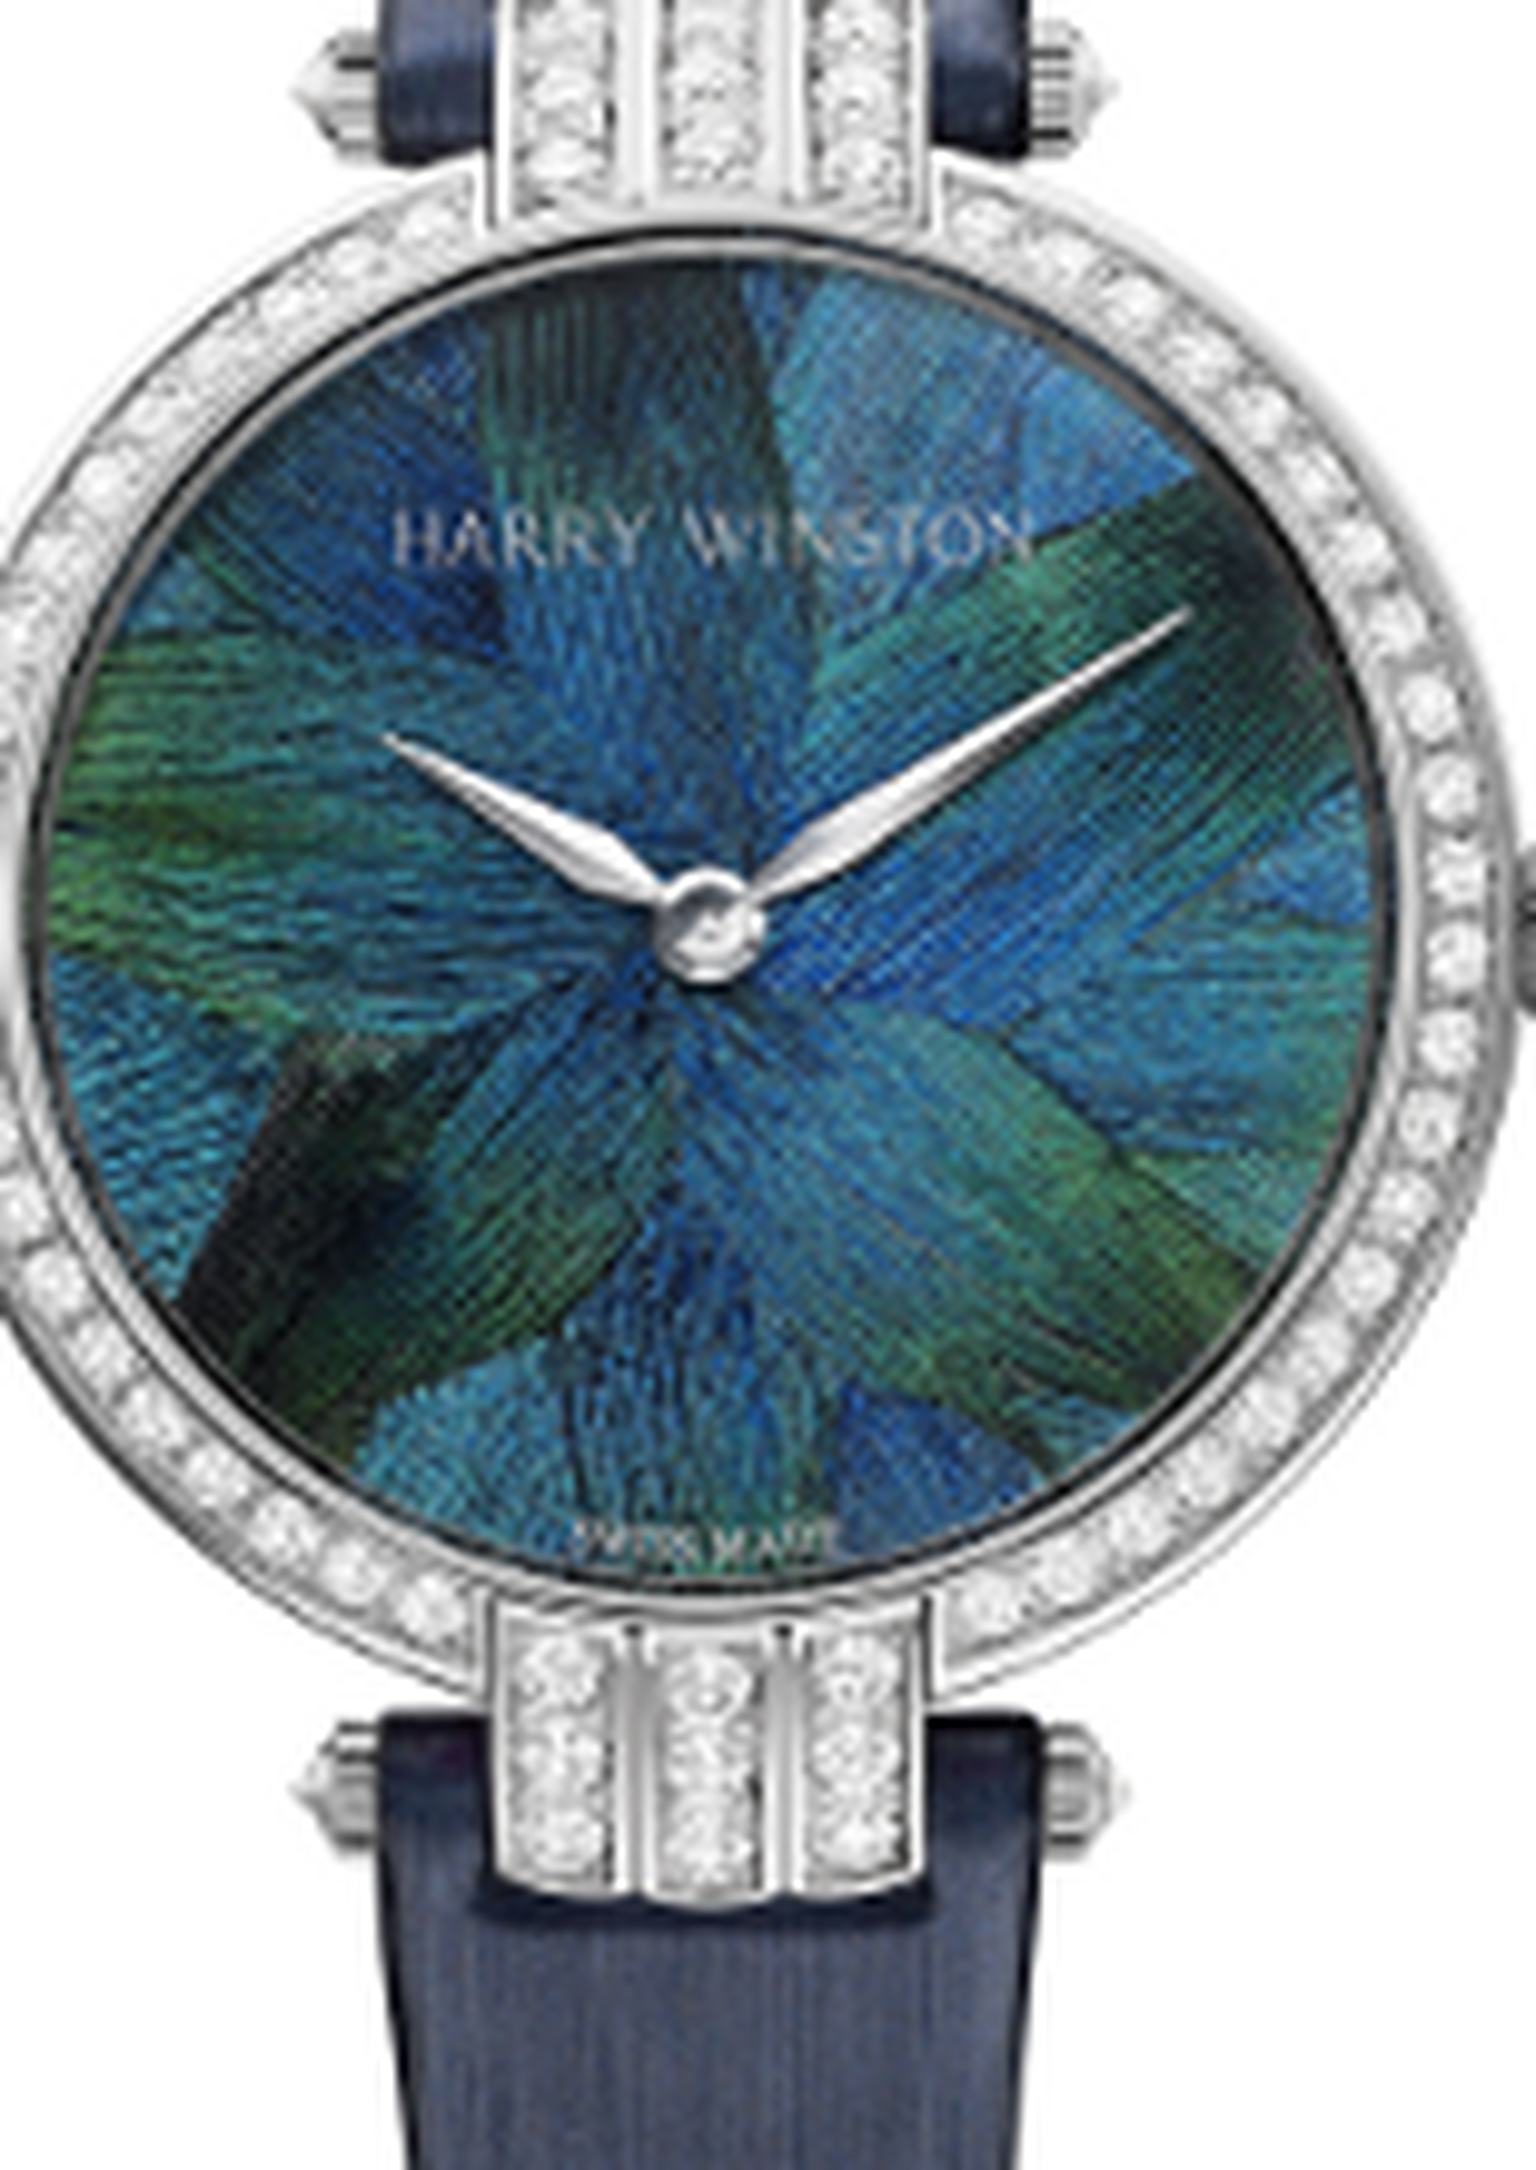 Harry Winston - premium feather watch baselword 2012 home